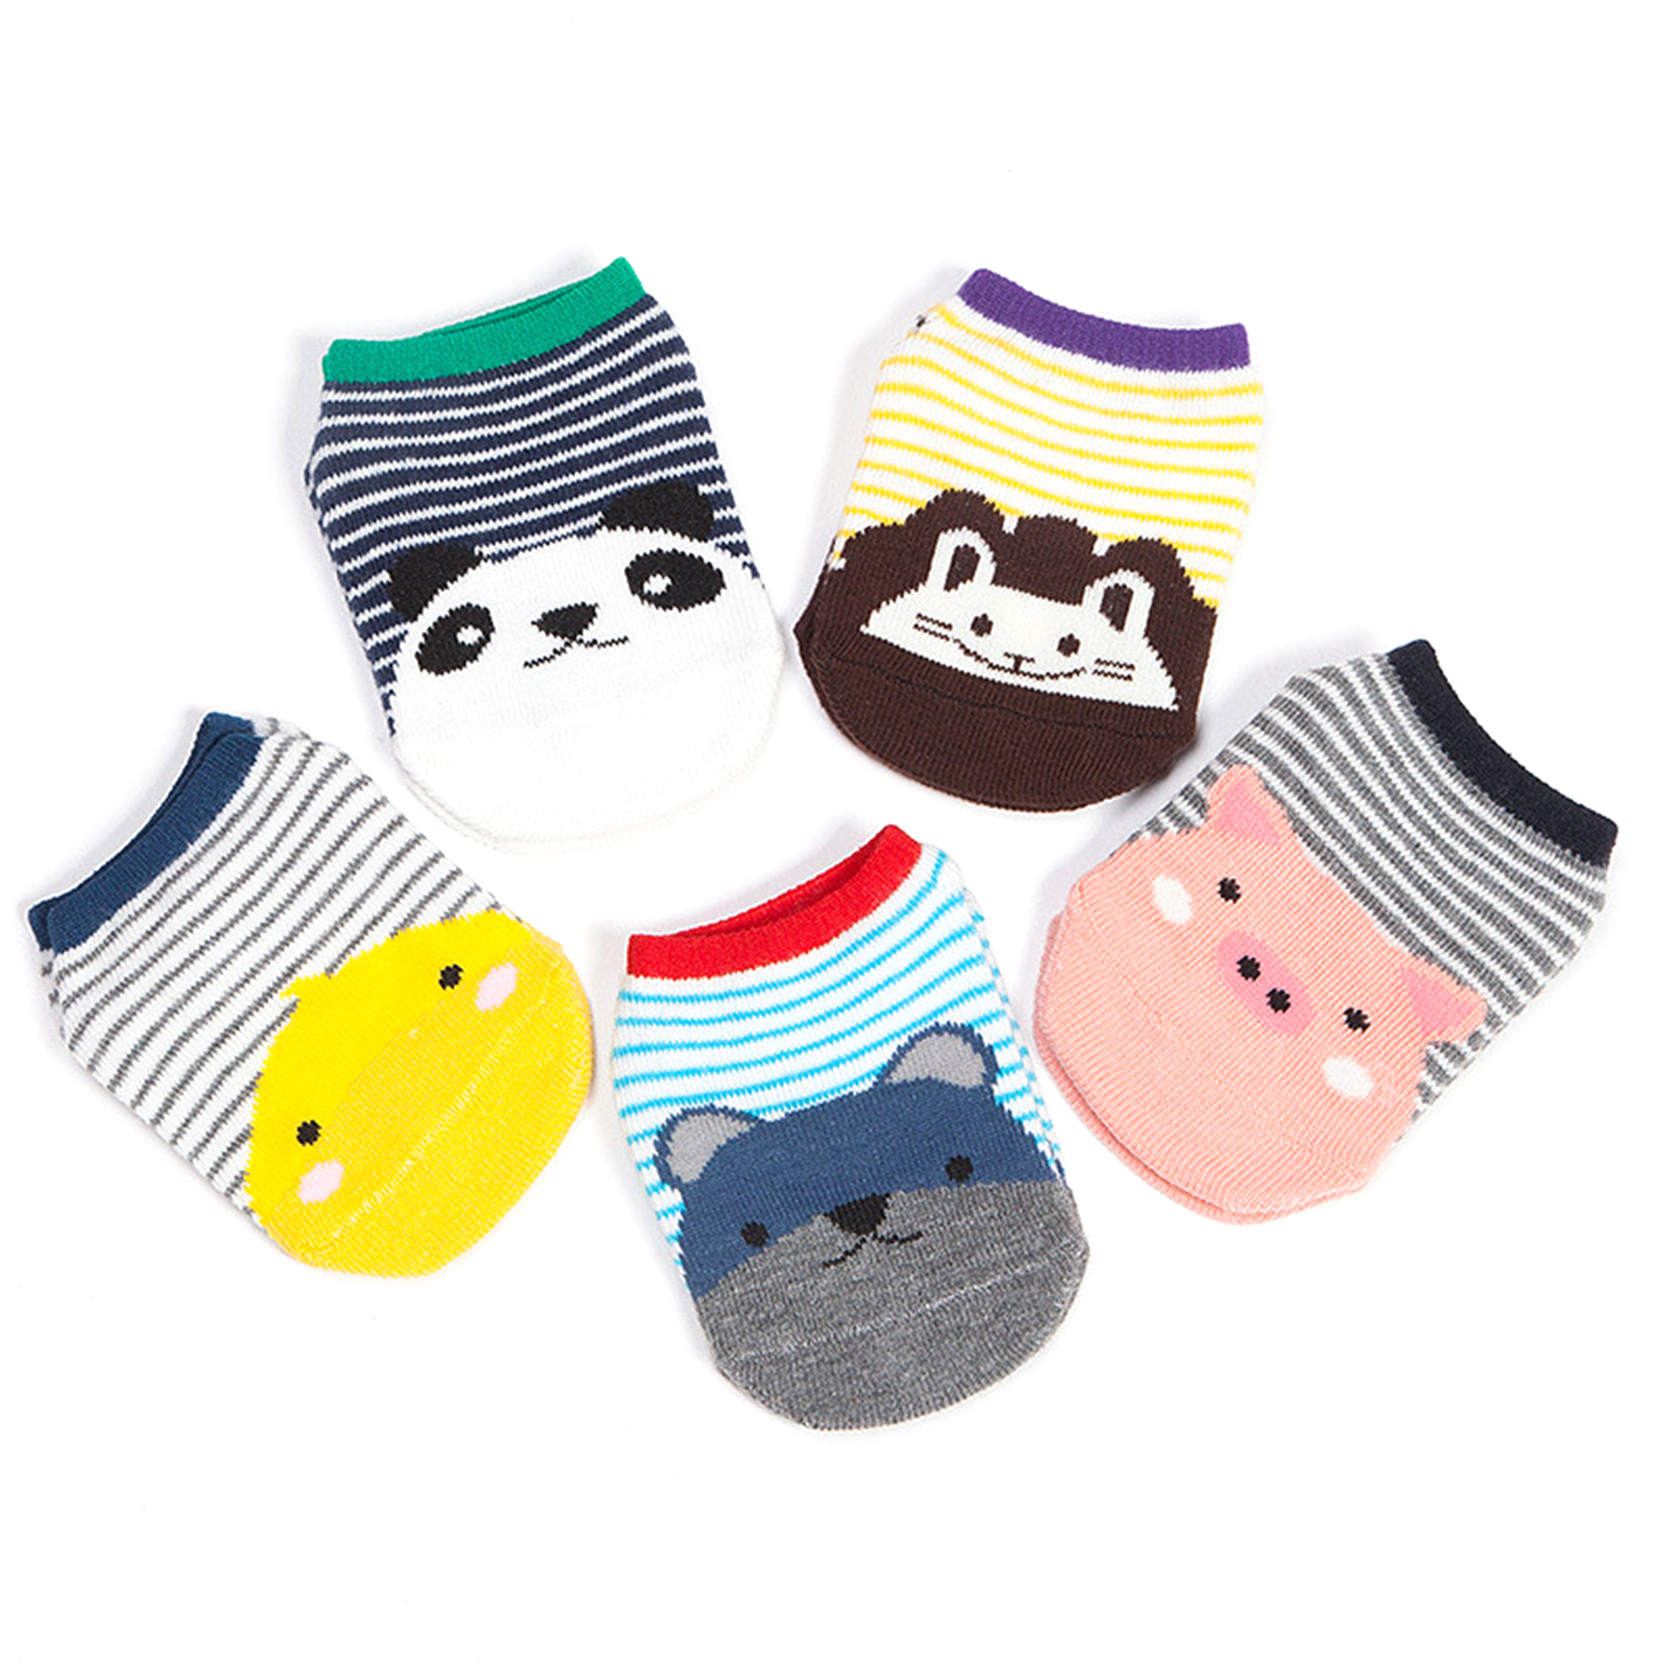 Newborn Infant Boy Girl Baby Socks Anti Slip Cotton Striped Print Animal Pig Lion Bear Panda Cute Short Socks